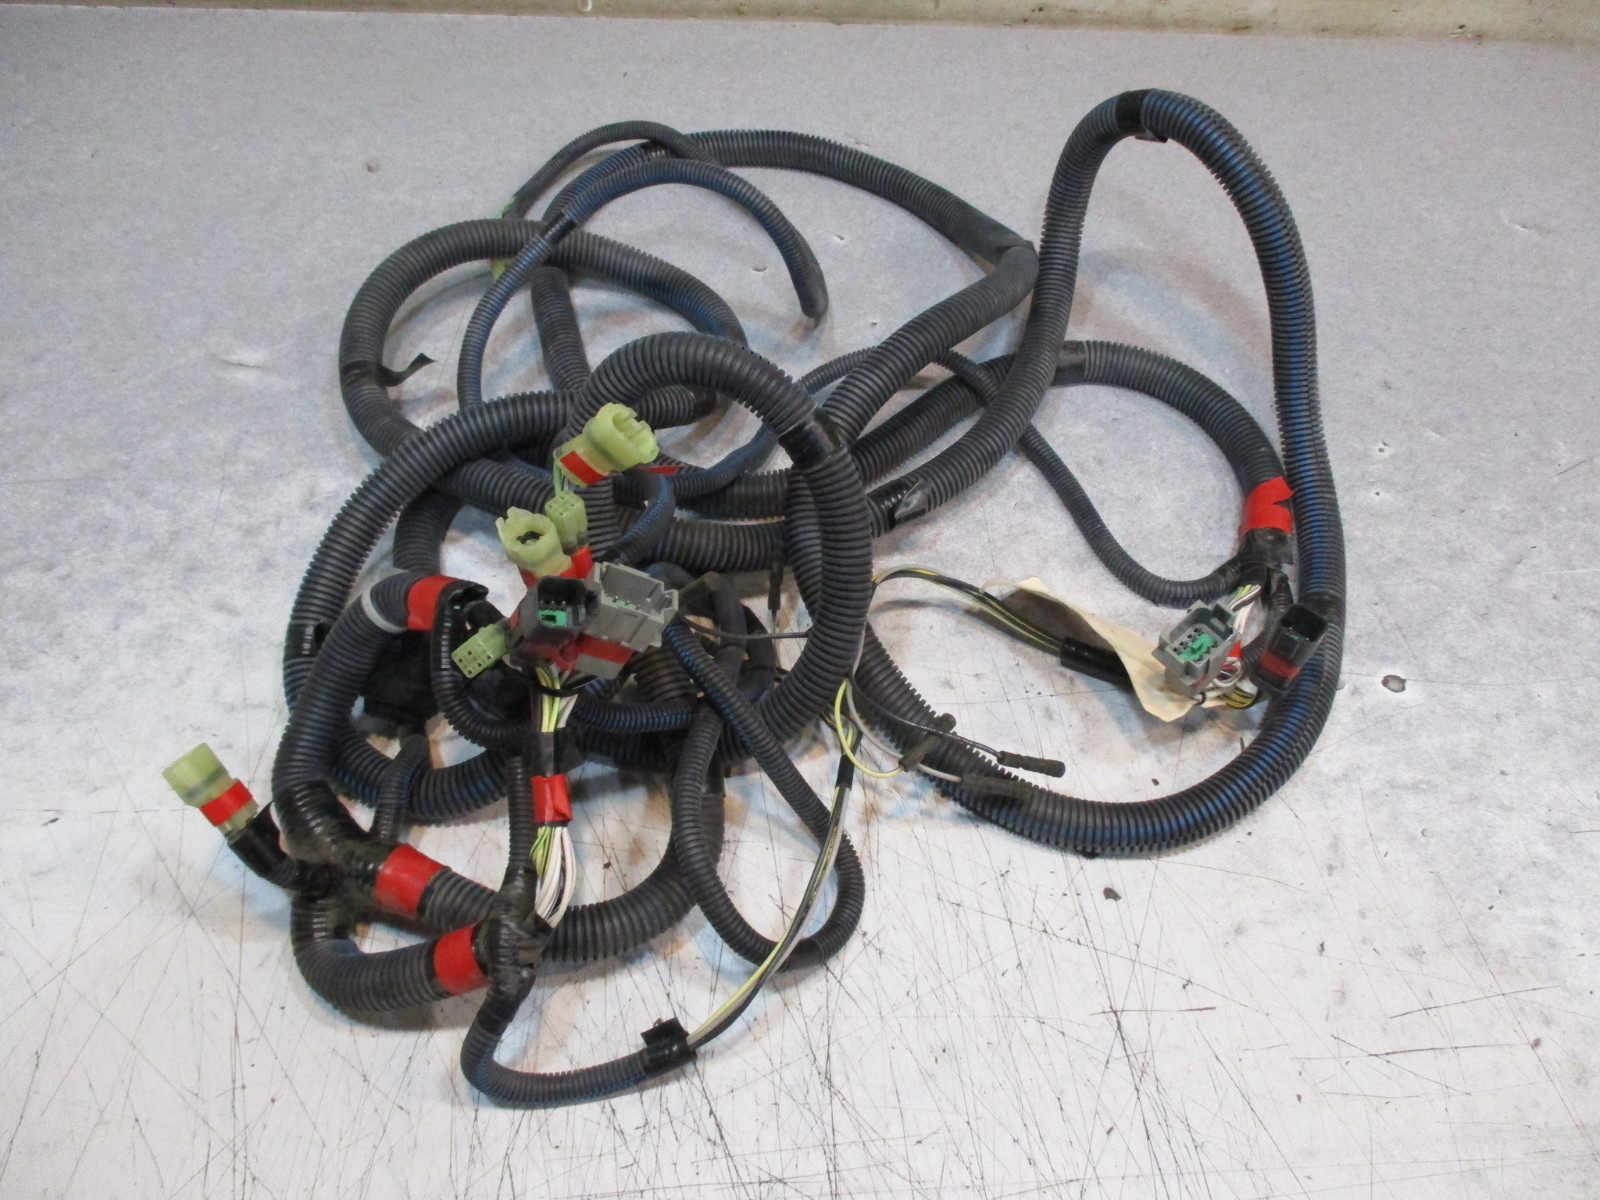 hight resolution of 36552 zw7 220ah honda marine boat engine to dash wire harness red green bay propeller marine llc